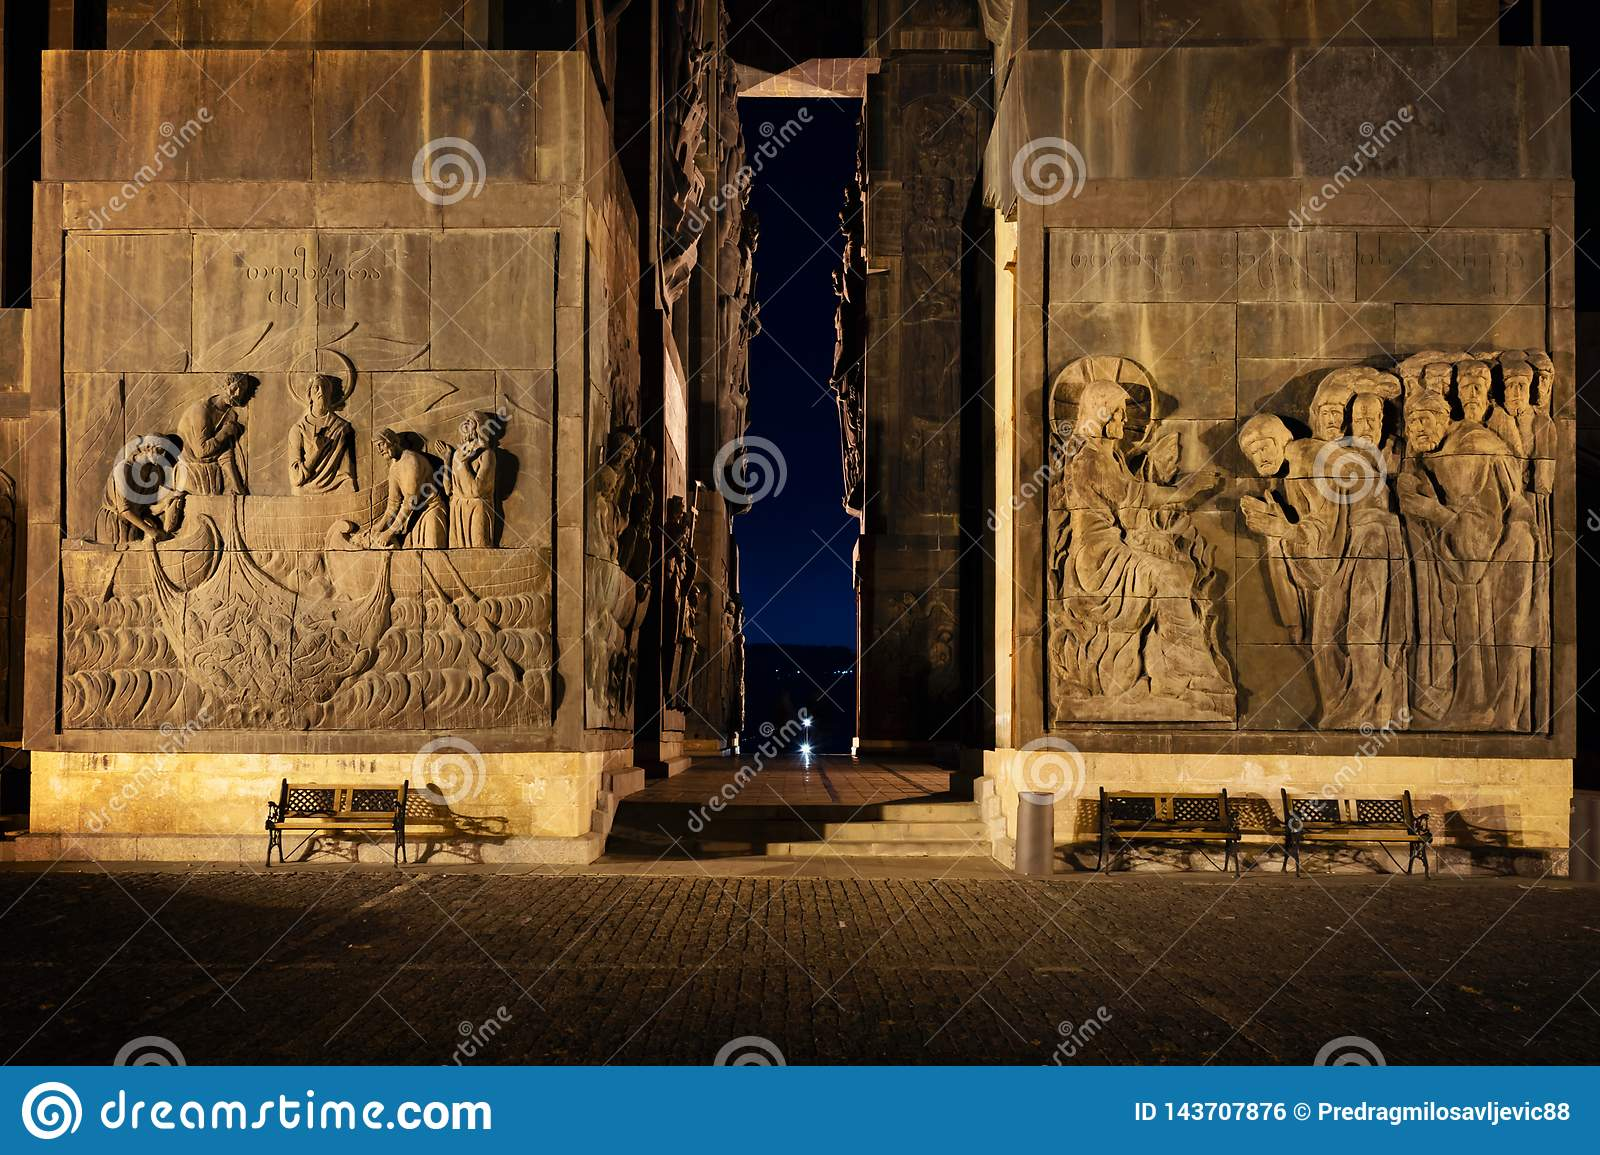 Georgia, Tbilisi - 05.02.2019. - Relief carvings on the walls of massive monumental structure Chronicles of Georgia - Night image